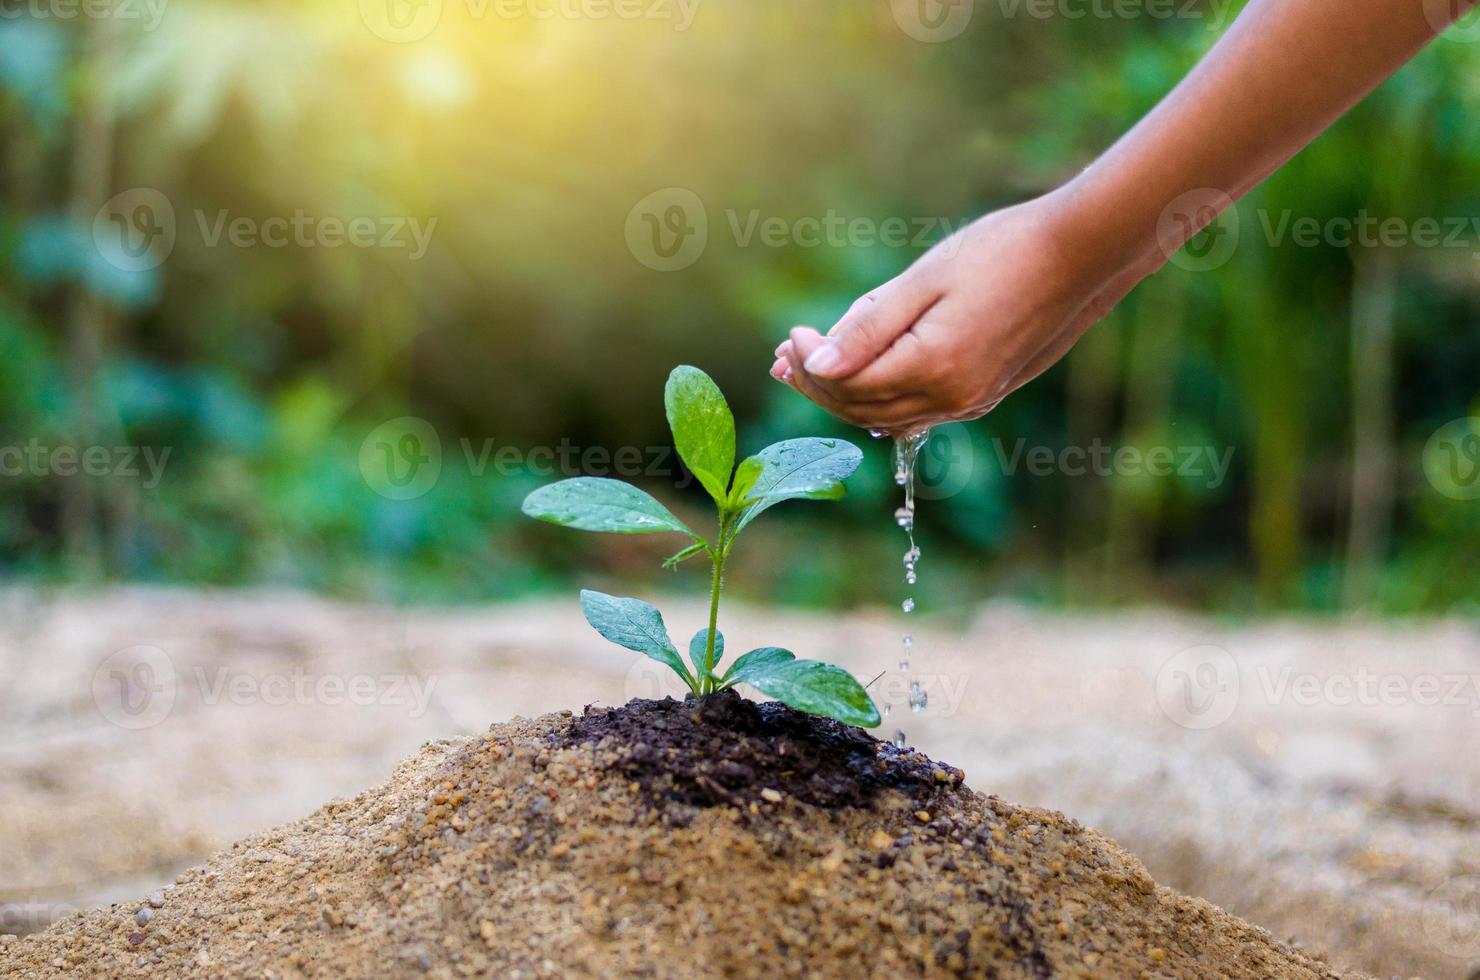 hand give water tree In the hands of trees growing seedlings. Bokeh green Background Female hand holding tree on nature field grass Forest conservation concept photo